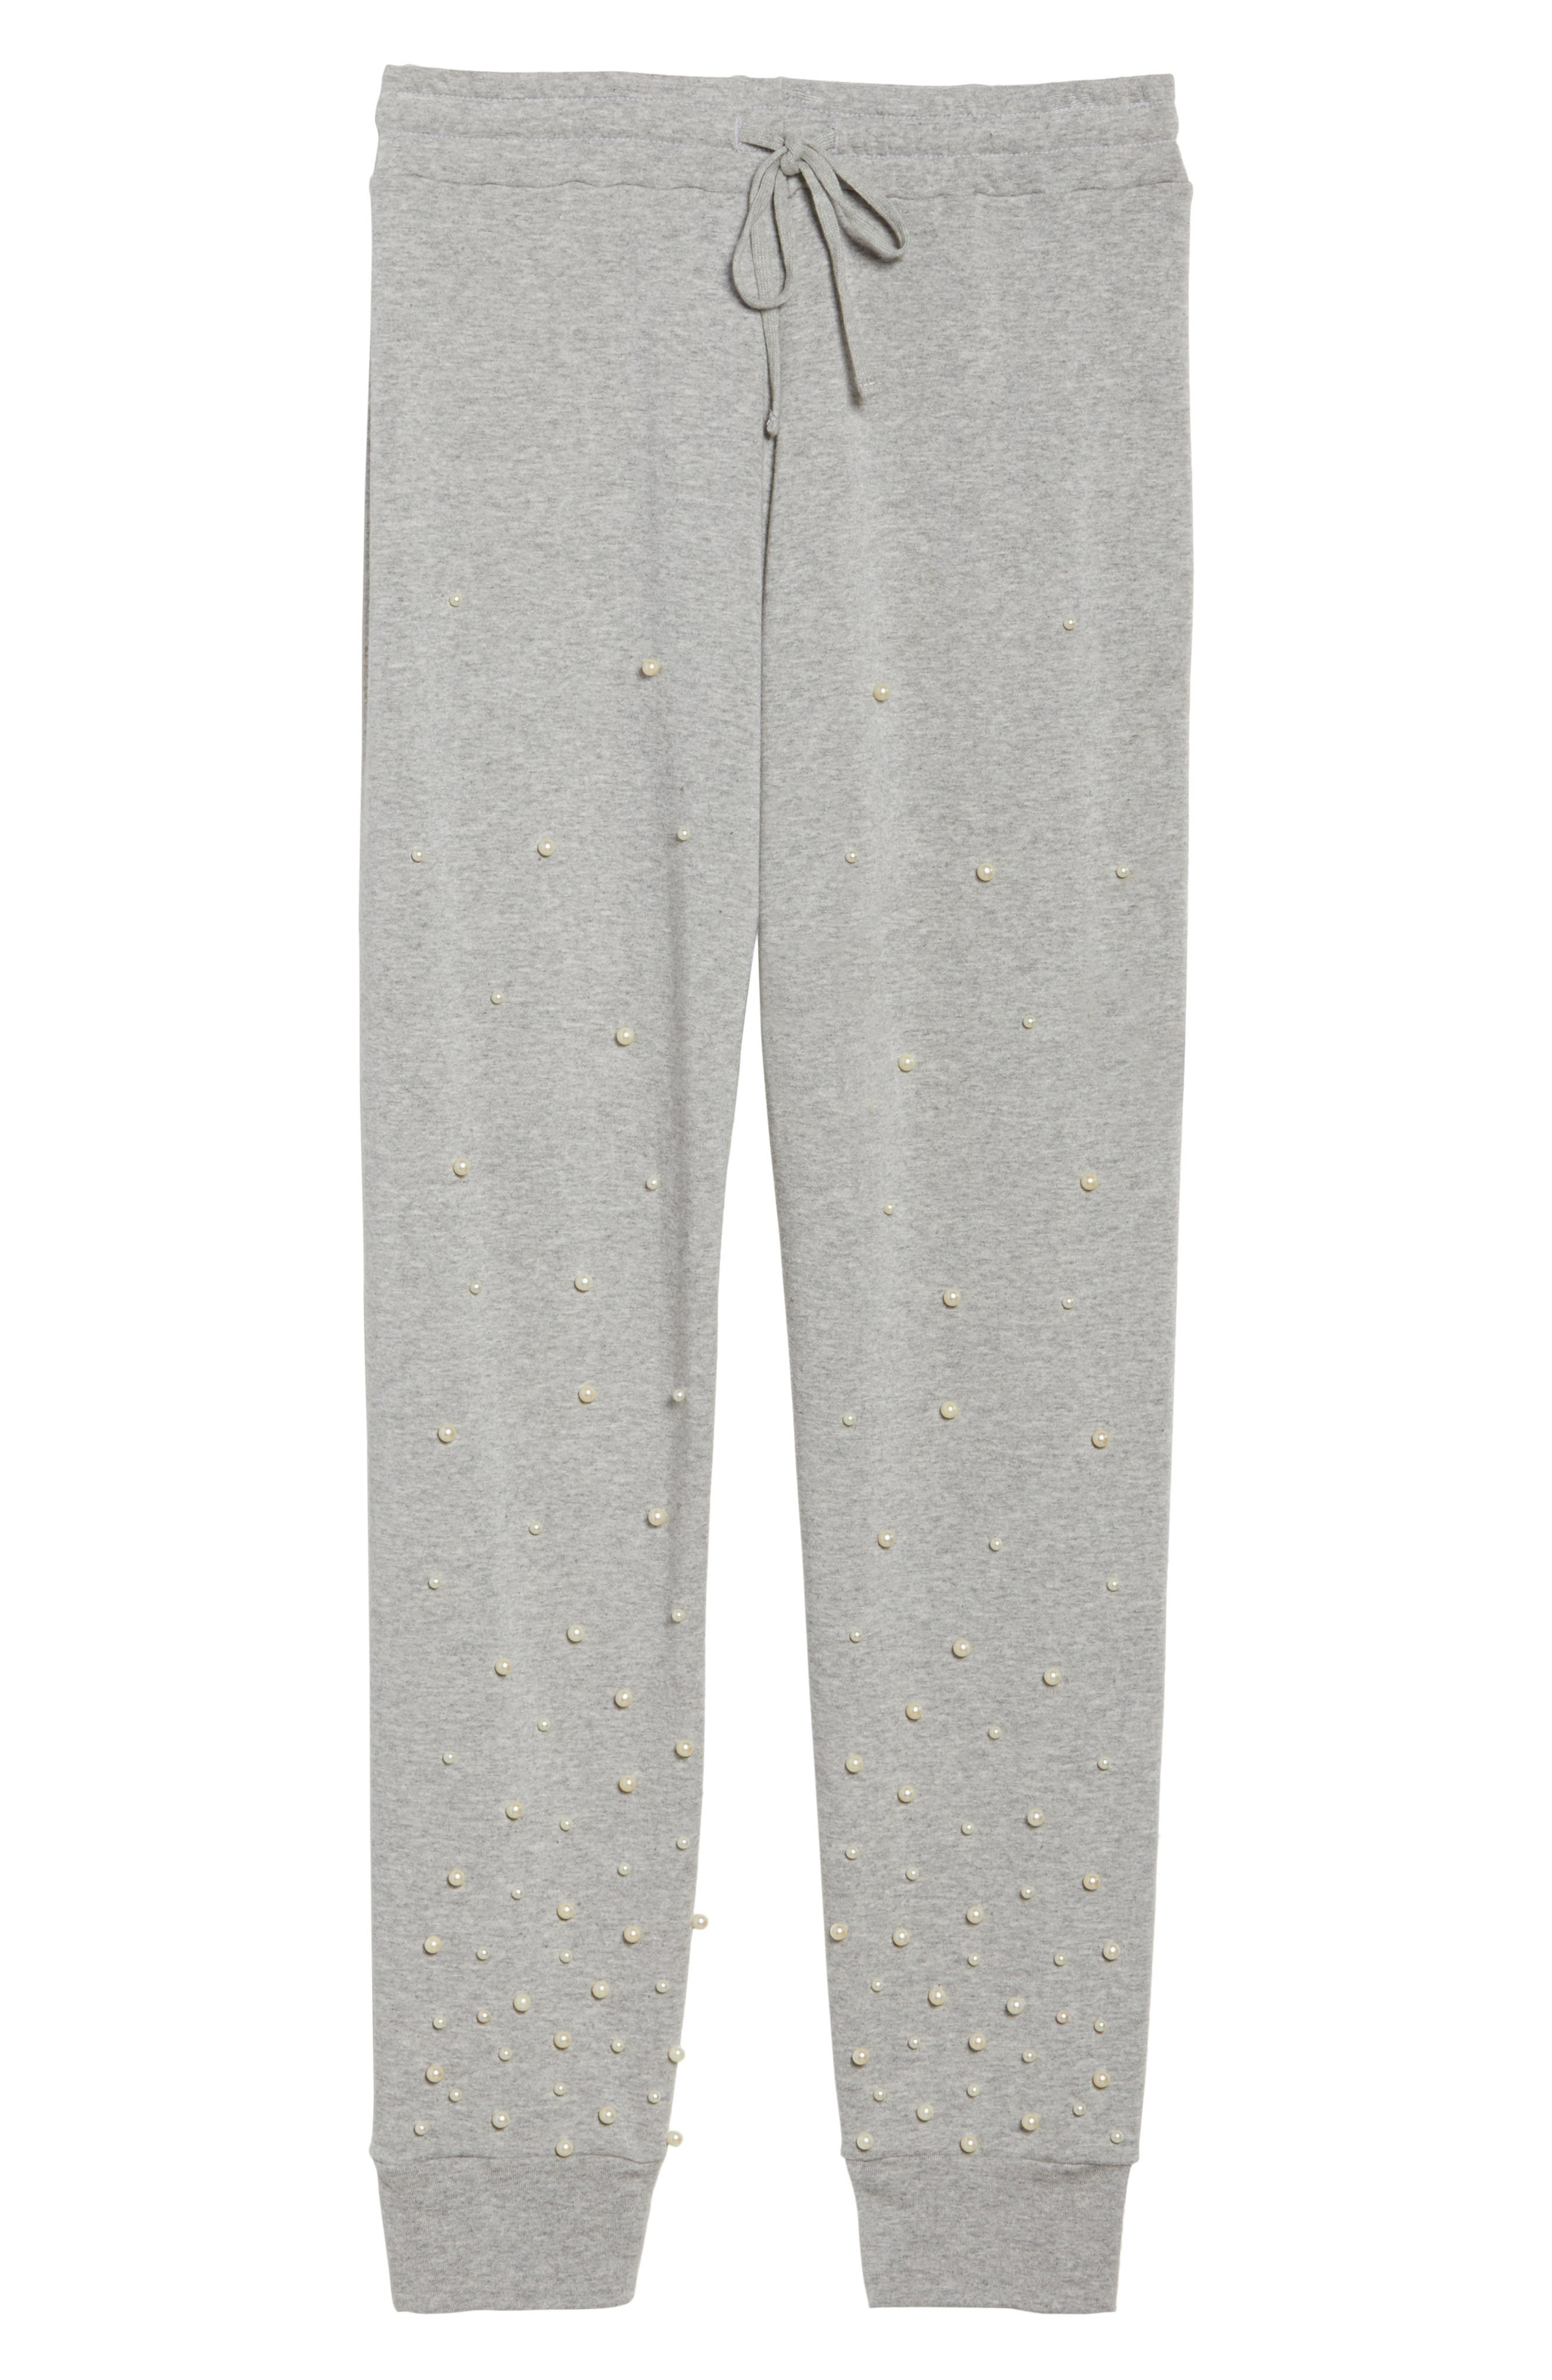 Price Imitation Pearl Embellished Lounge Pants,                             Alternate thumbnail 4, color,                             Heather Grey